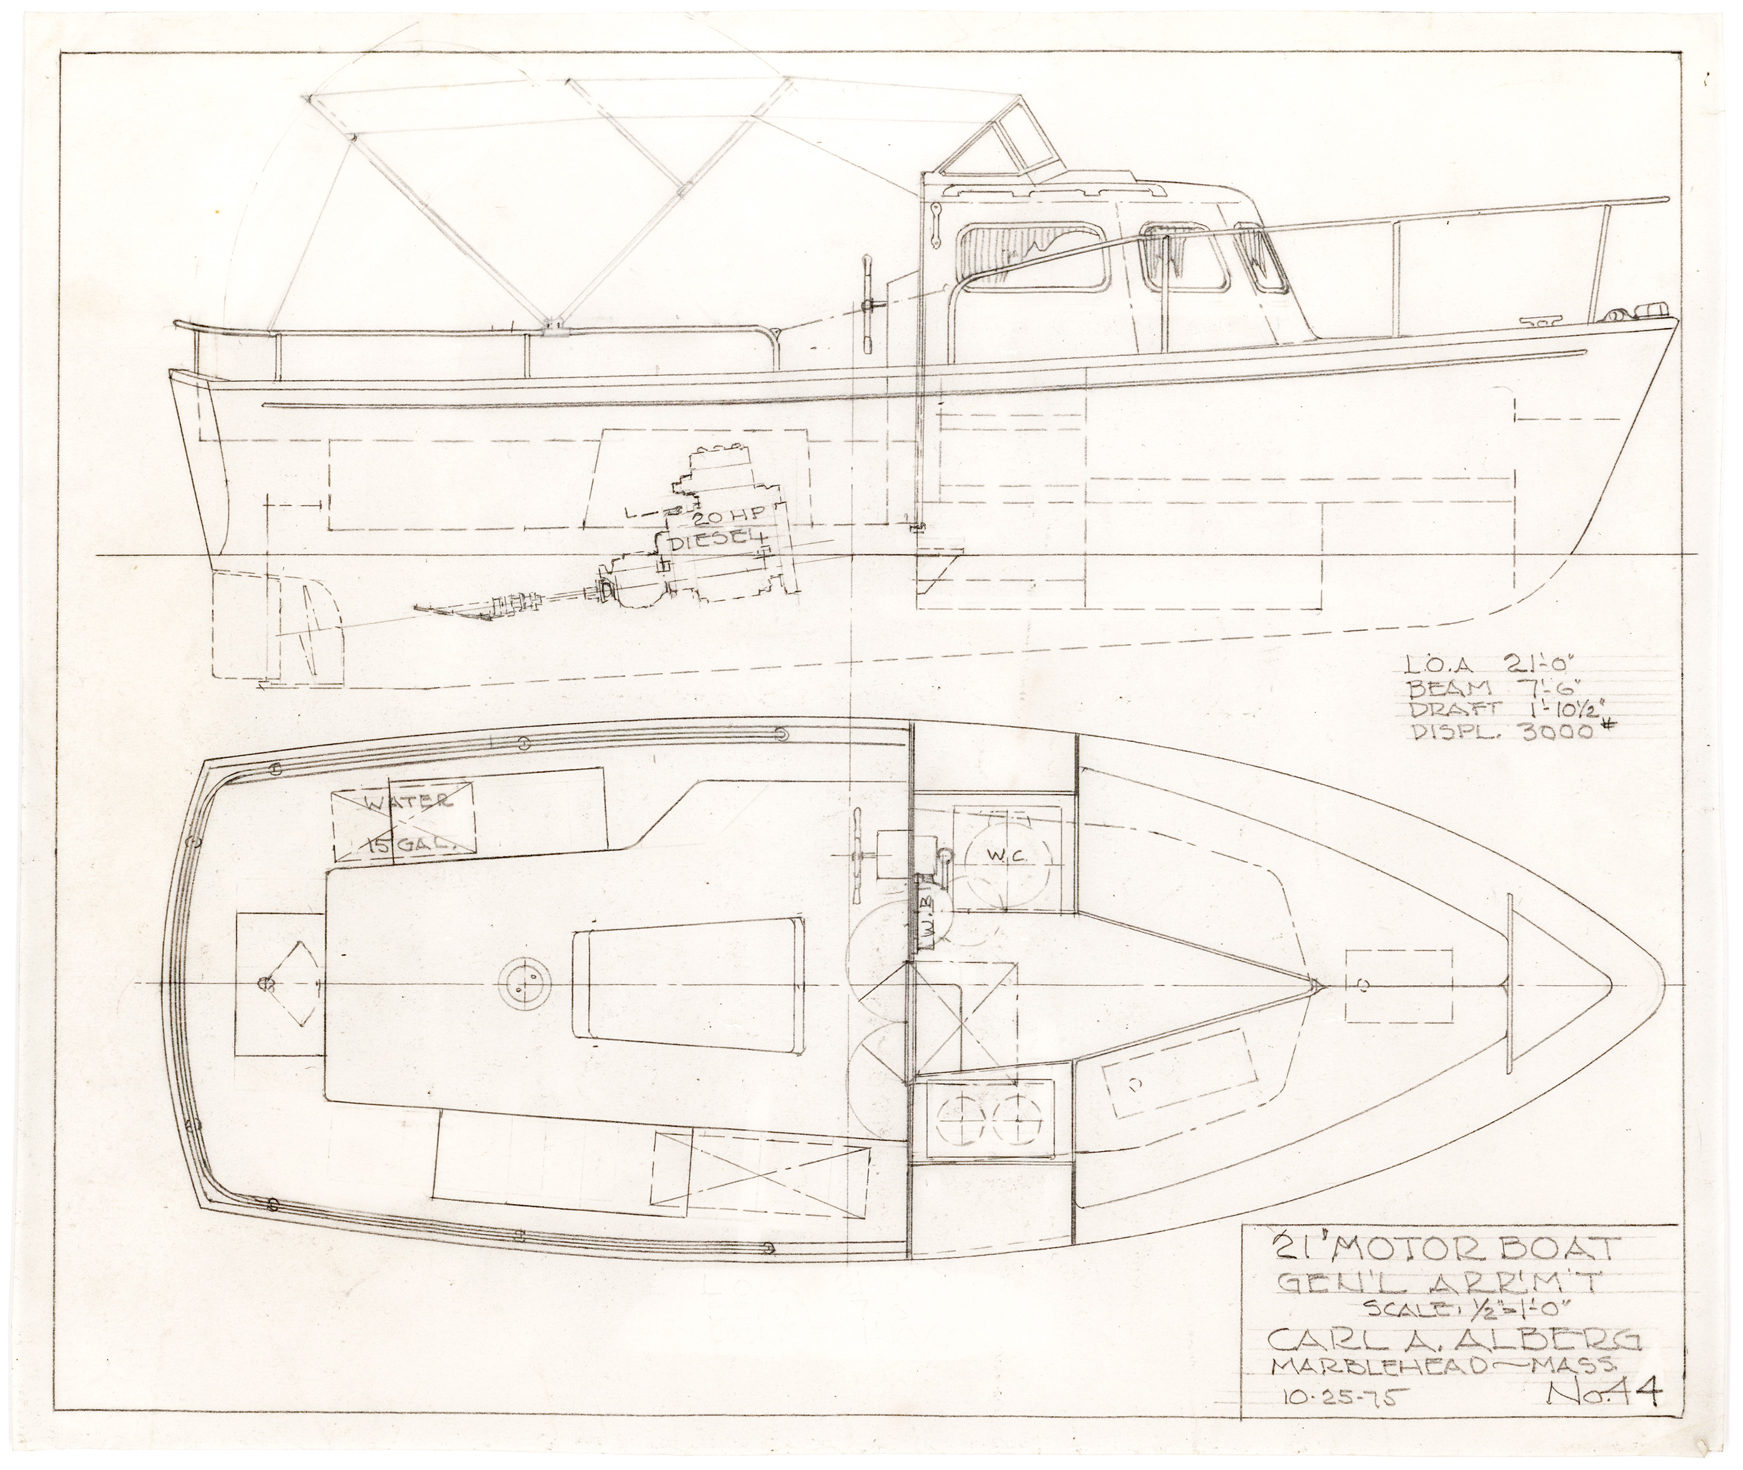 Original, Hand-Drawn Motor Boat Design by the Swedish-born, American Boat Designer of the Immensely Popular Triton and Cape Dory 22